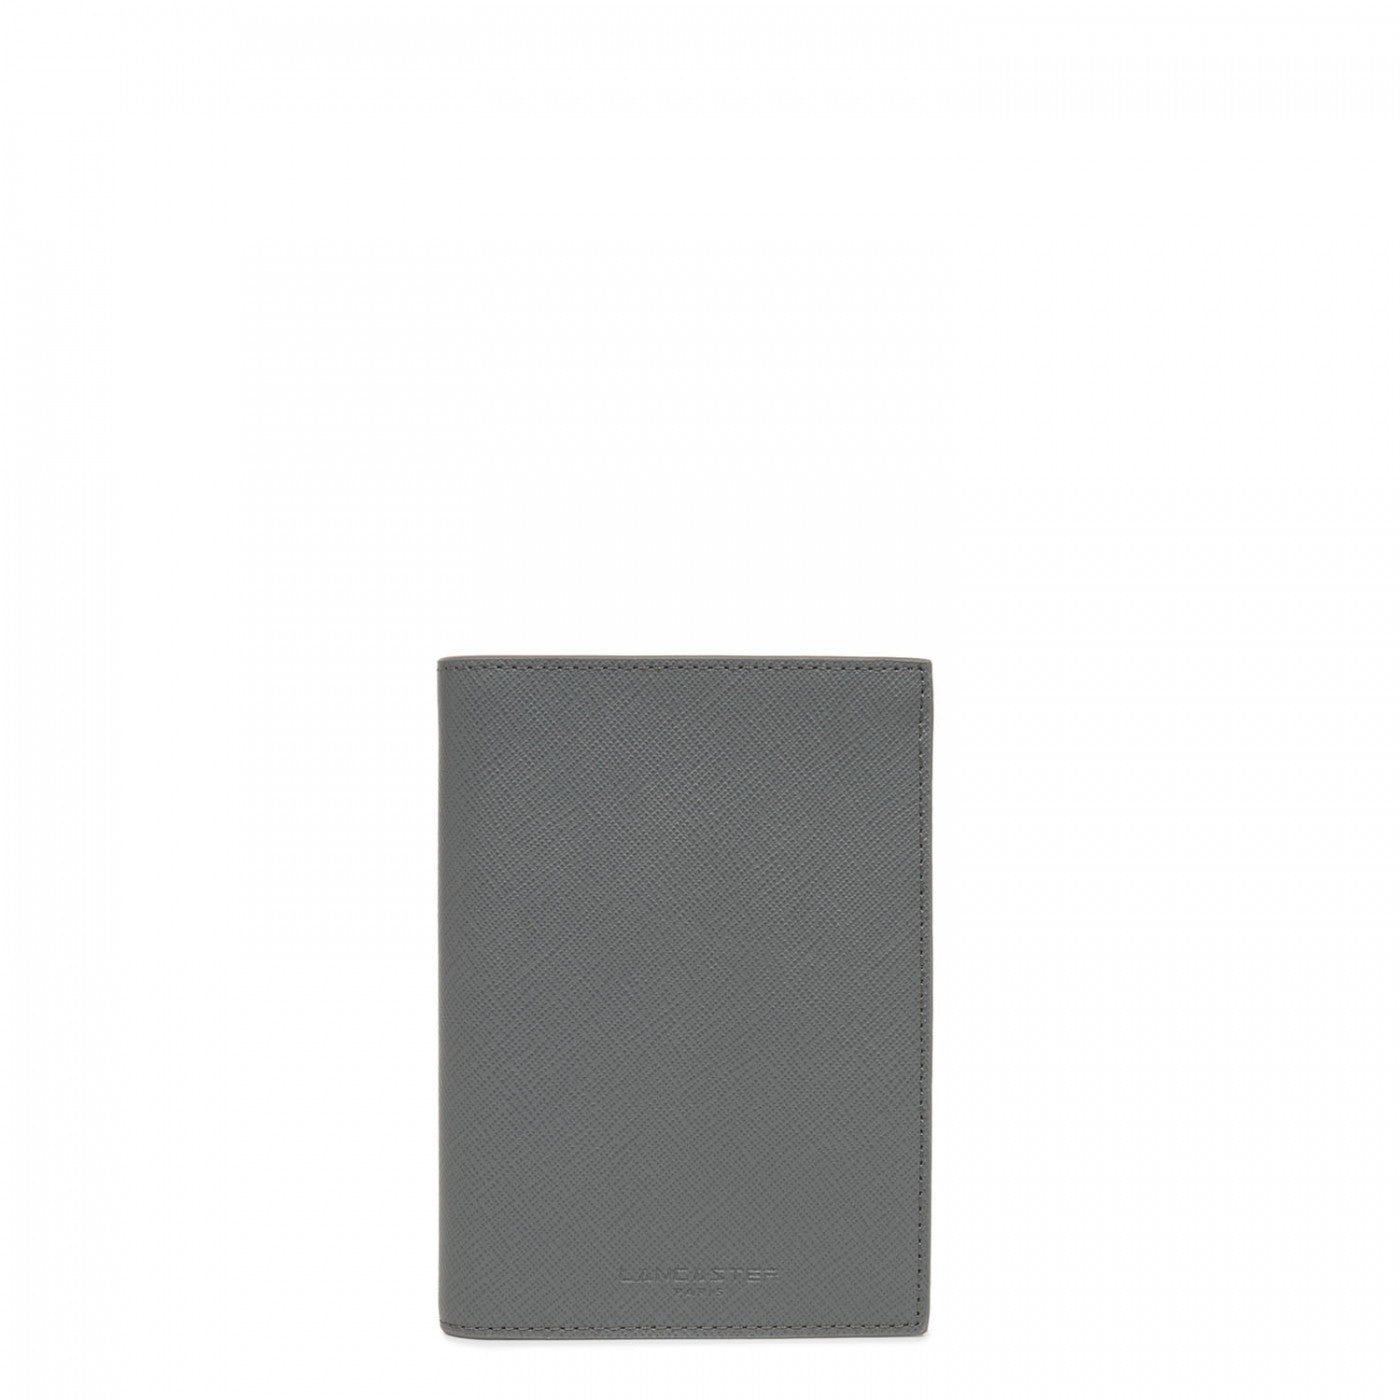 LANCASTER LARGE TRAVEL WALLET - GREY